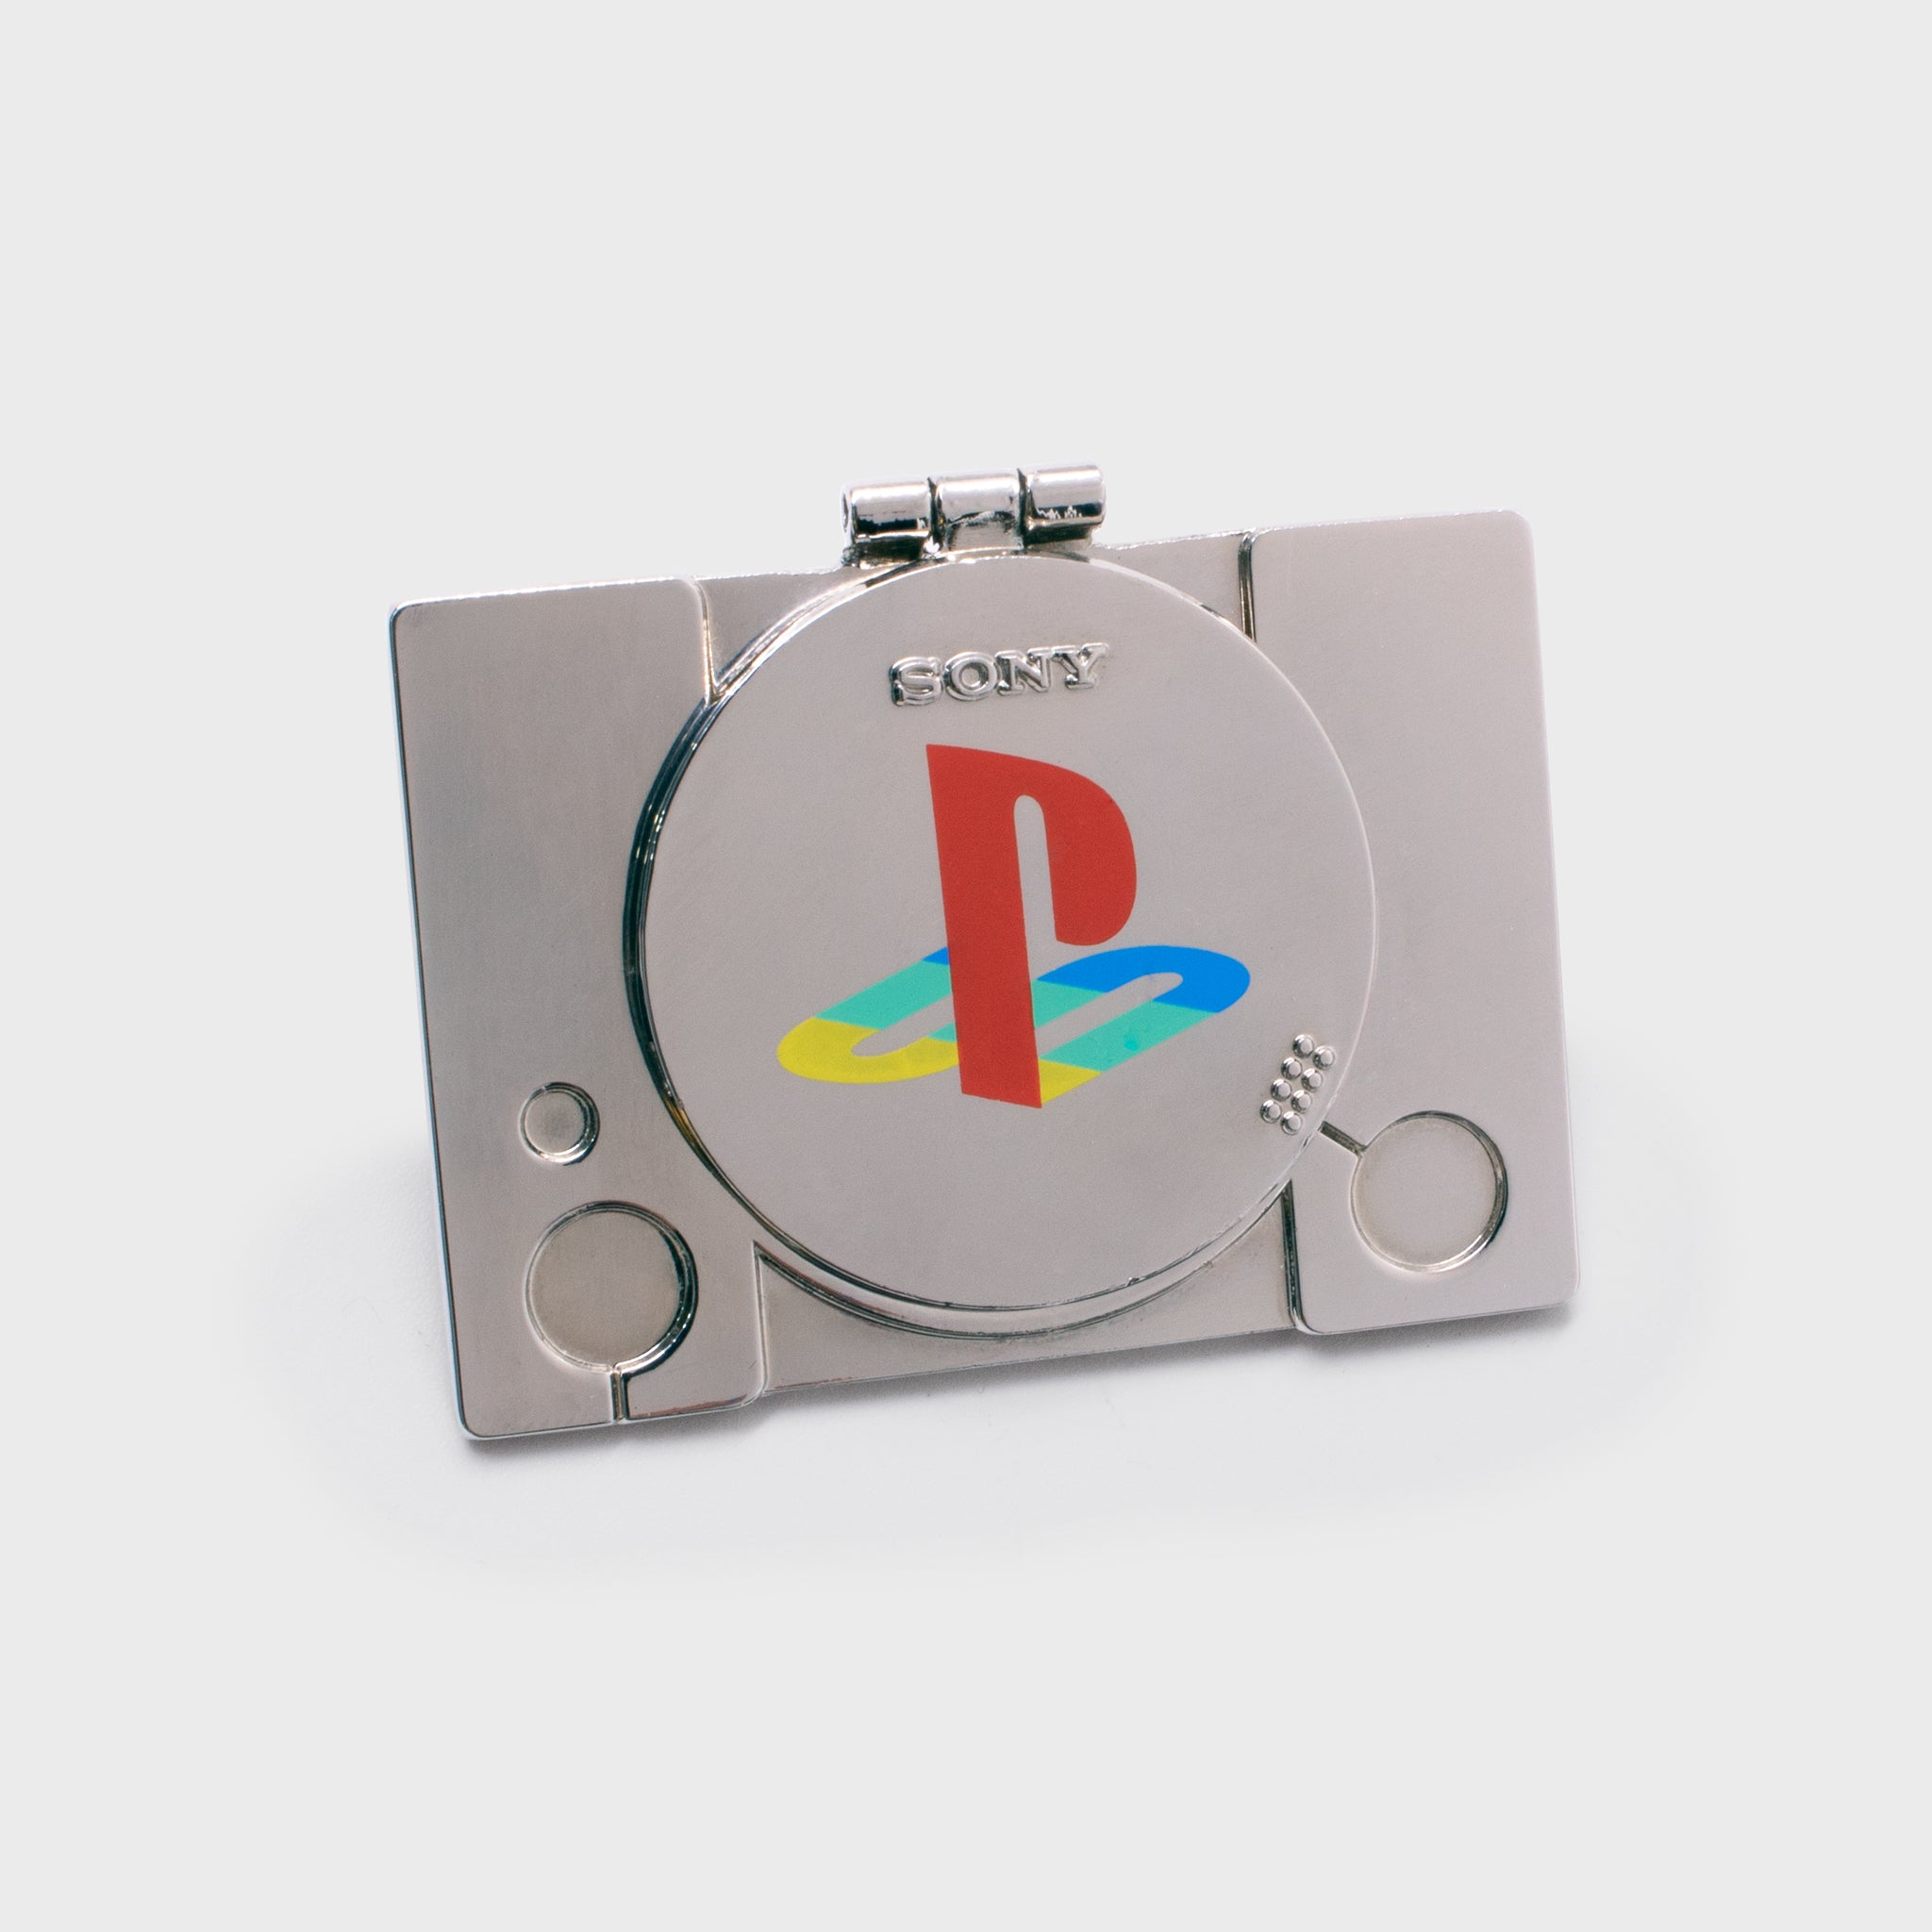 playstation ps4 ps video games console classic old school retro 90s gamestop retail box accessories collectibles exclusive culturefly enamel pin